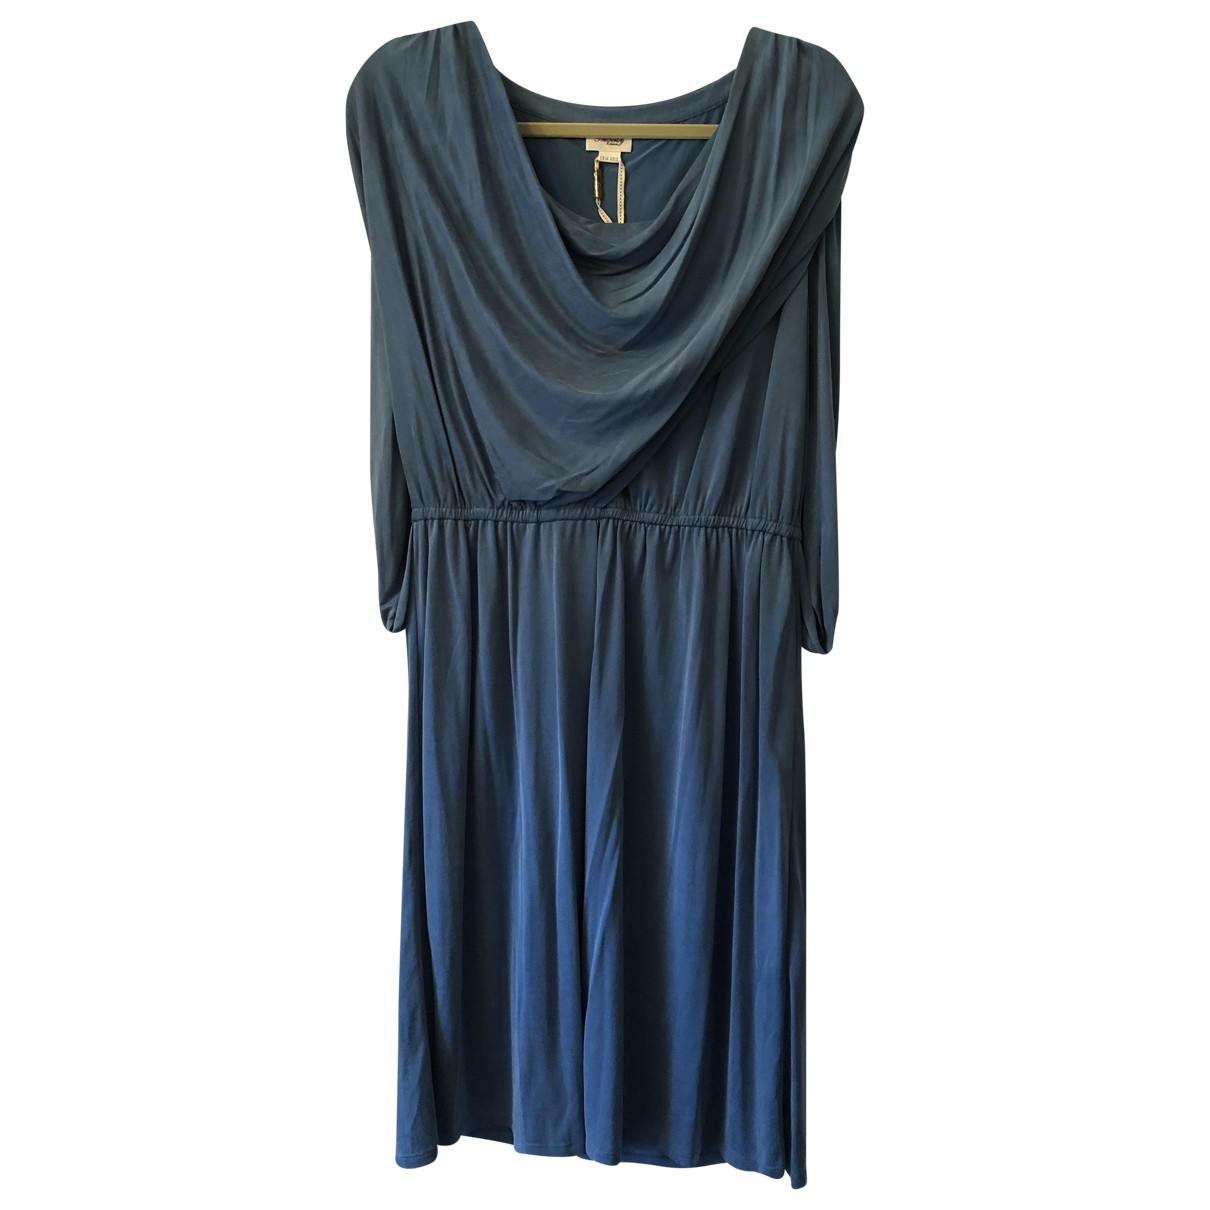 Temperley London \N Kleid in  Blau Polyester